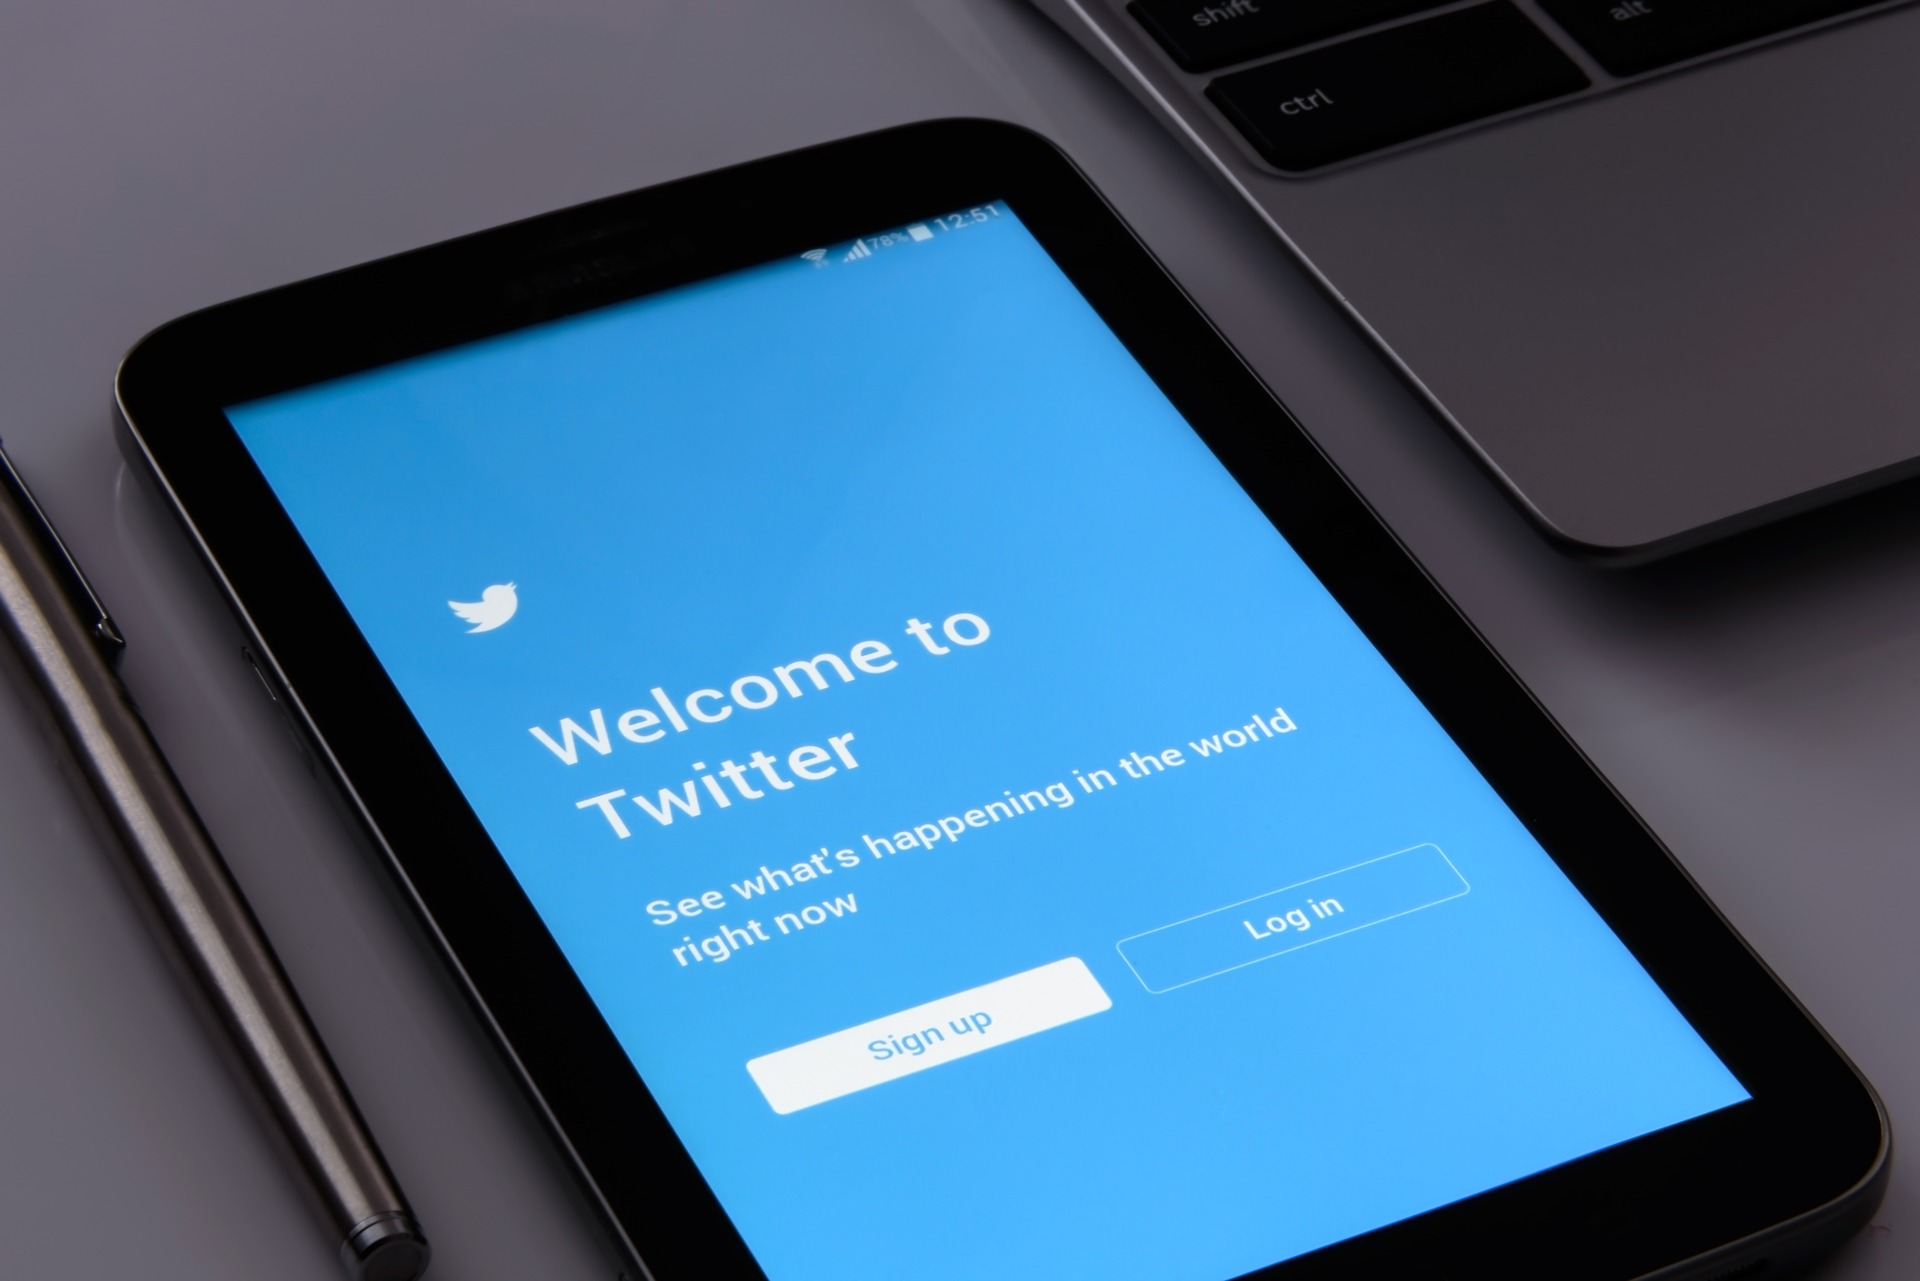 Get Your Videos Ready For Twitter | Online file conversion blog